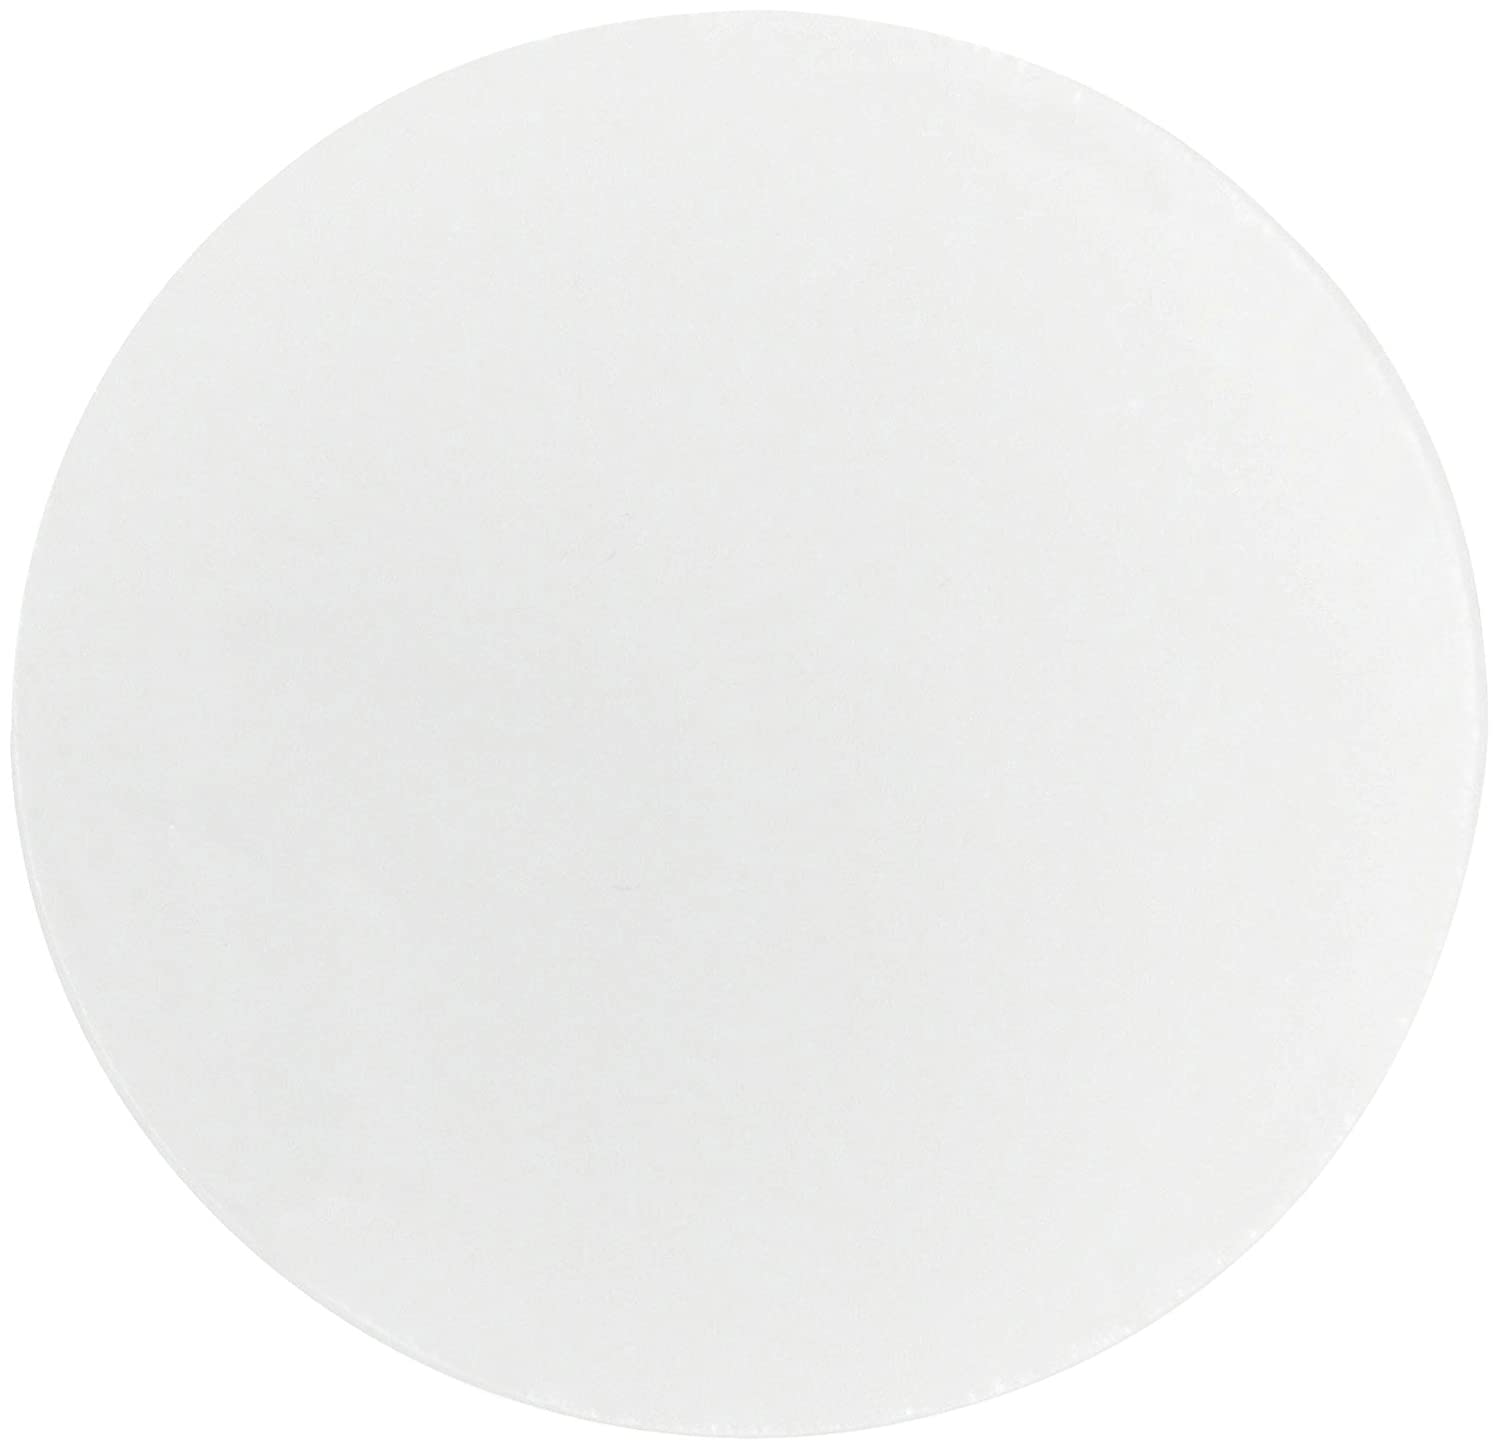 Whatman 111115 Polycarbonate Nuclepore Track Etched Membrane Filter 47mm Diameter 10.0 Micron Pack of 100